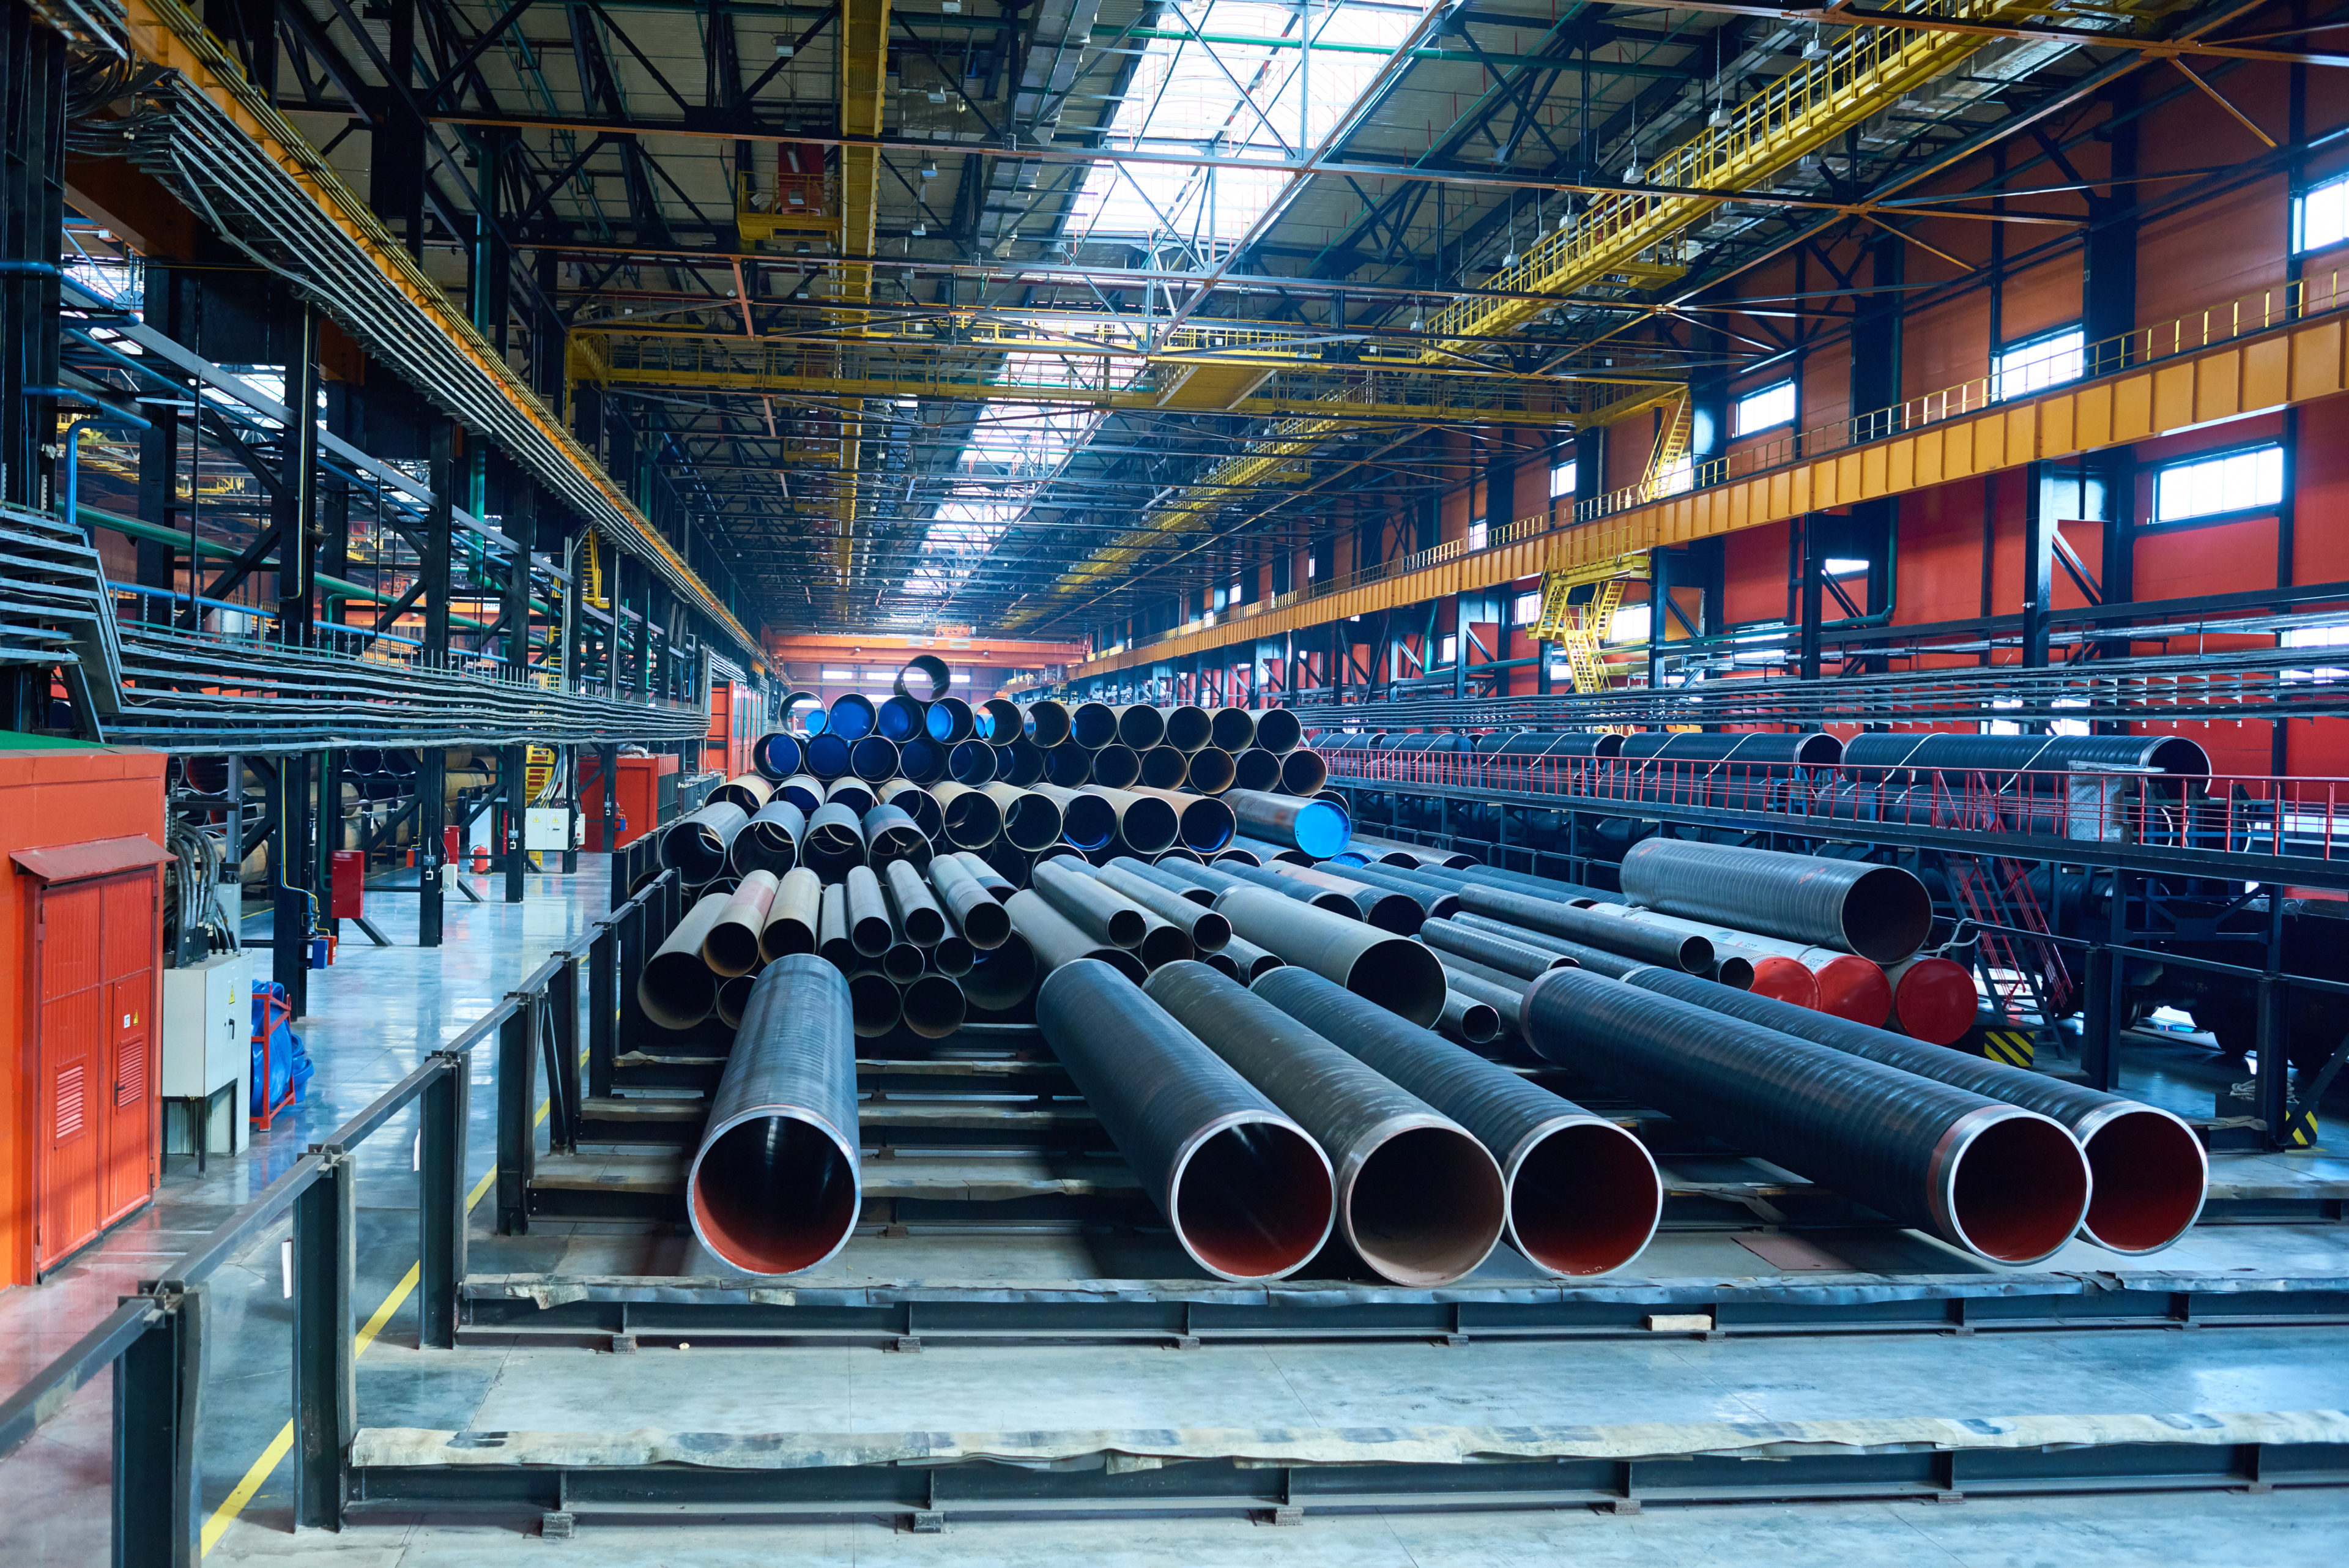 Abundance of pipes at factory